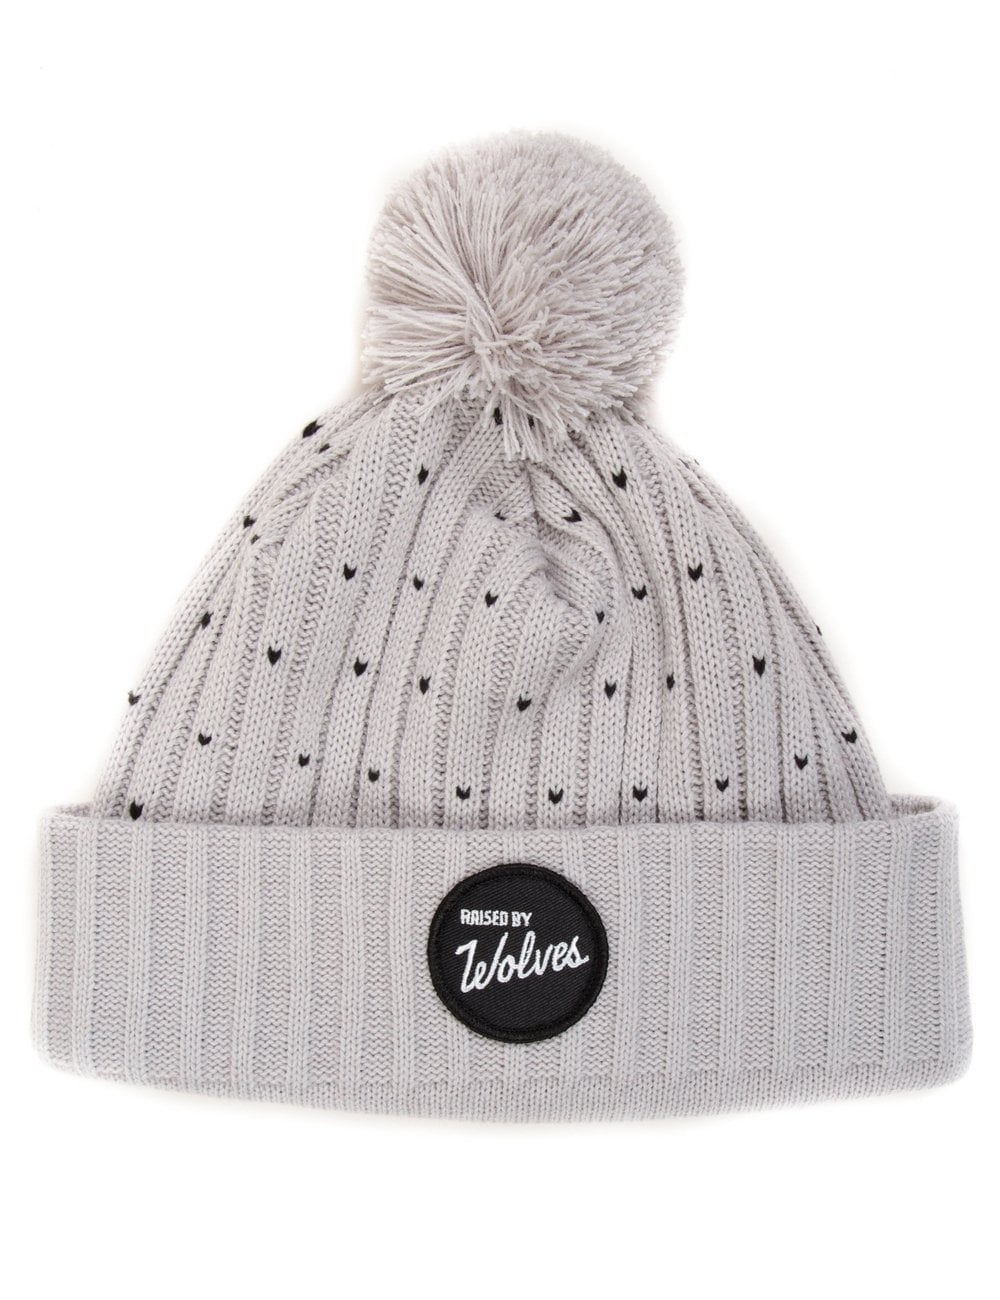 0f0c9787293 Raised by Wolves Varsity Beanie - Heather Grey Black - Accessories ...